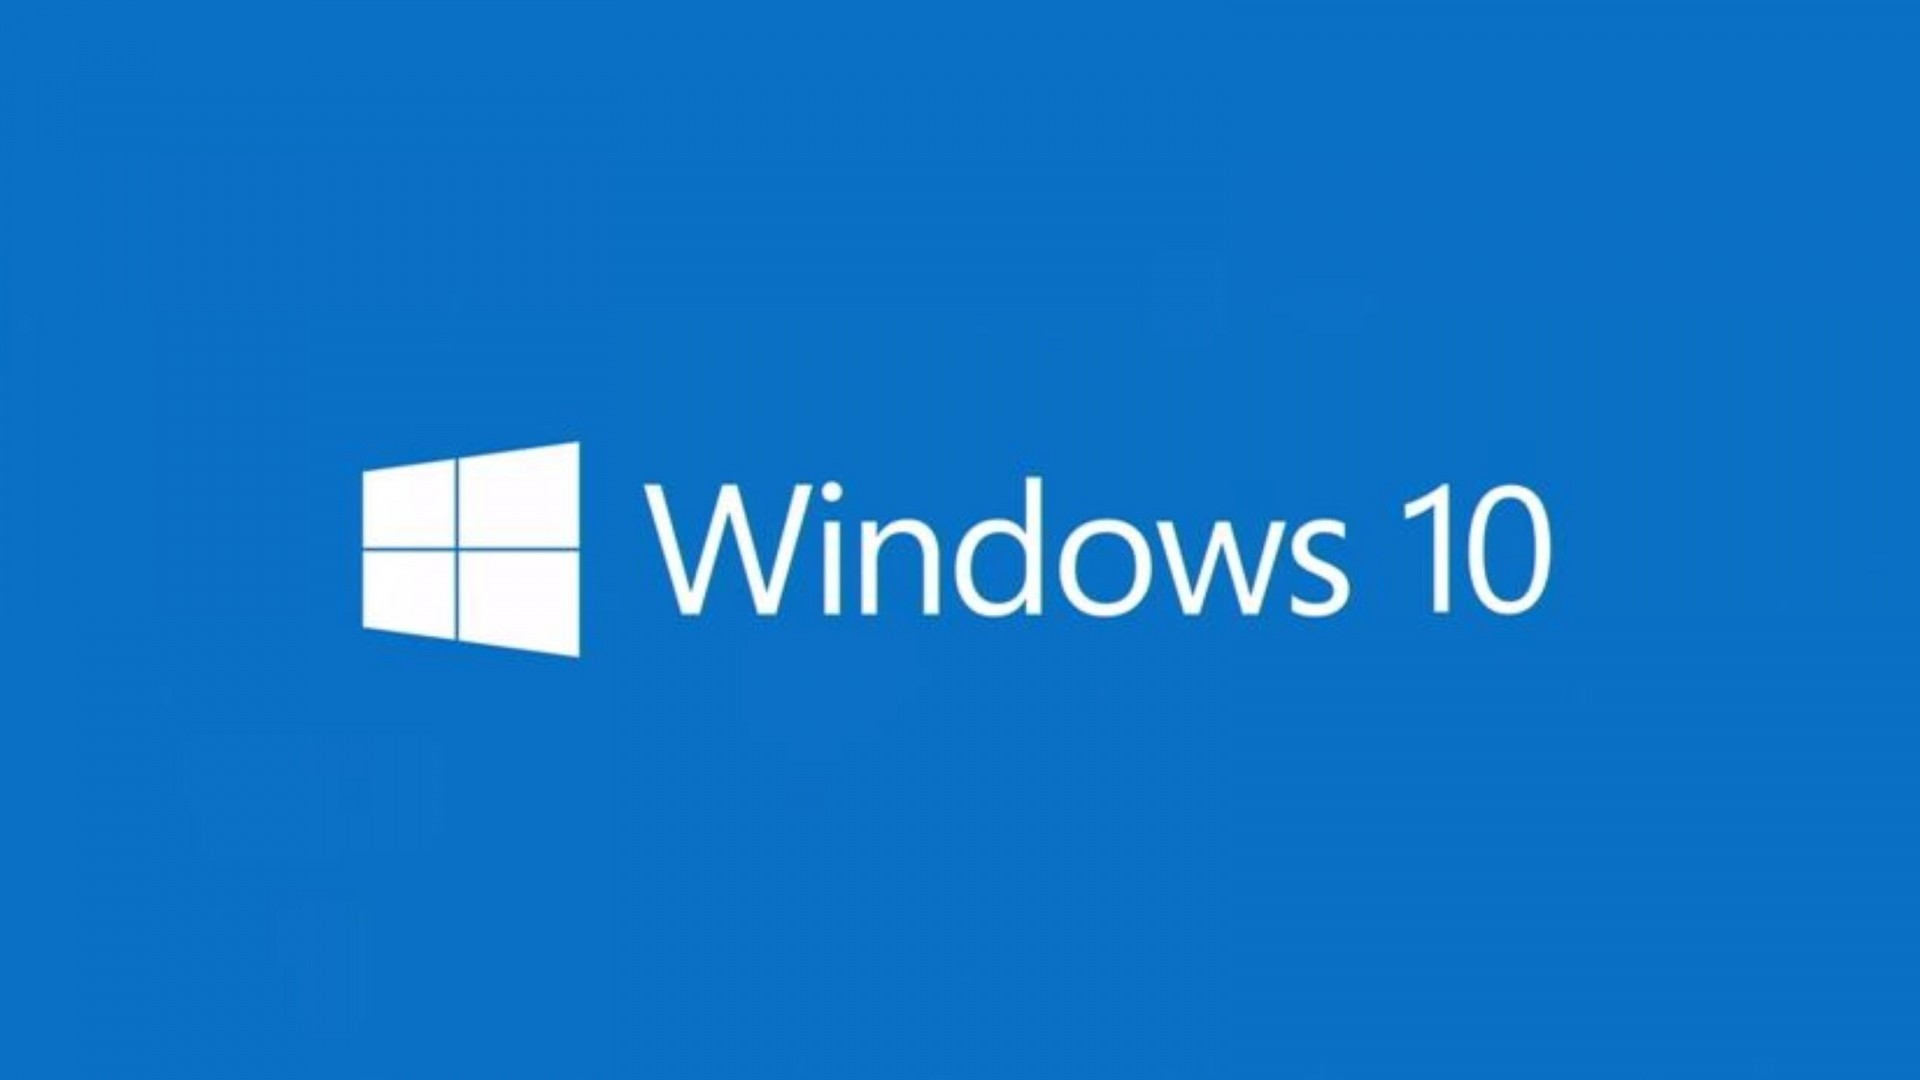 1920x1080 Preview wallpaper windows 10 technical preview, windows 10 logo, microsoft